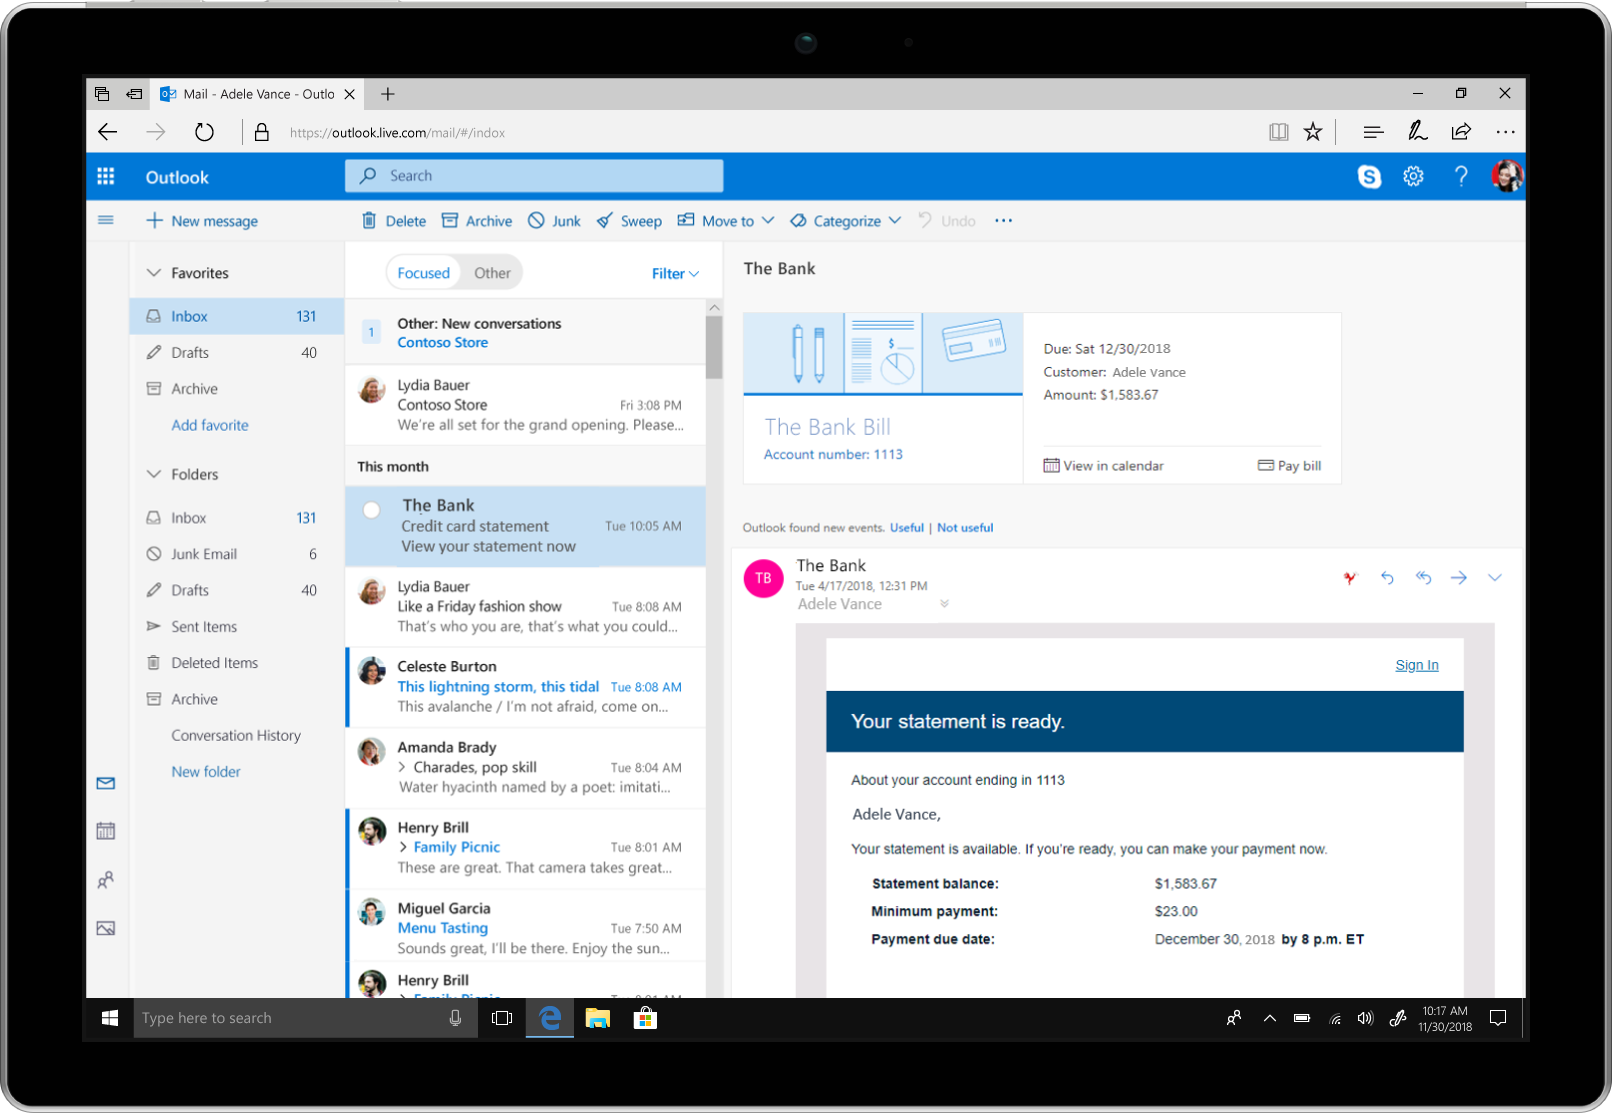 New Calendar, Mail, and mobile Outlook features help you get things done